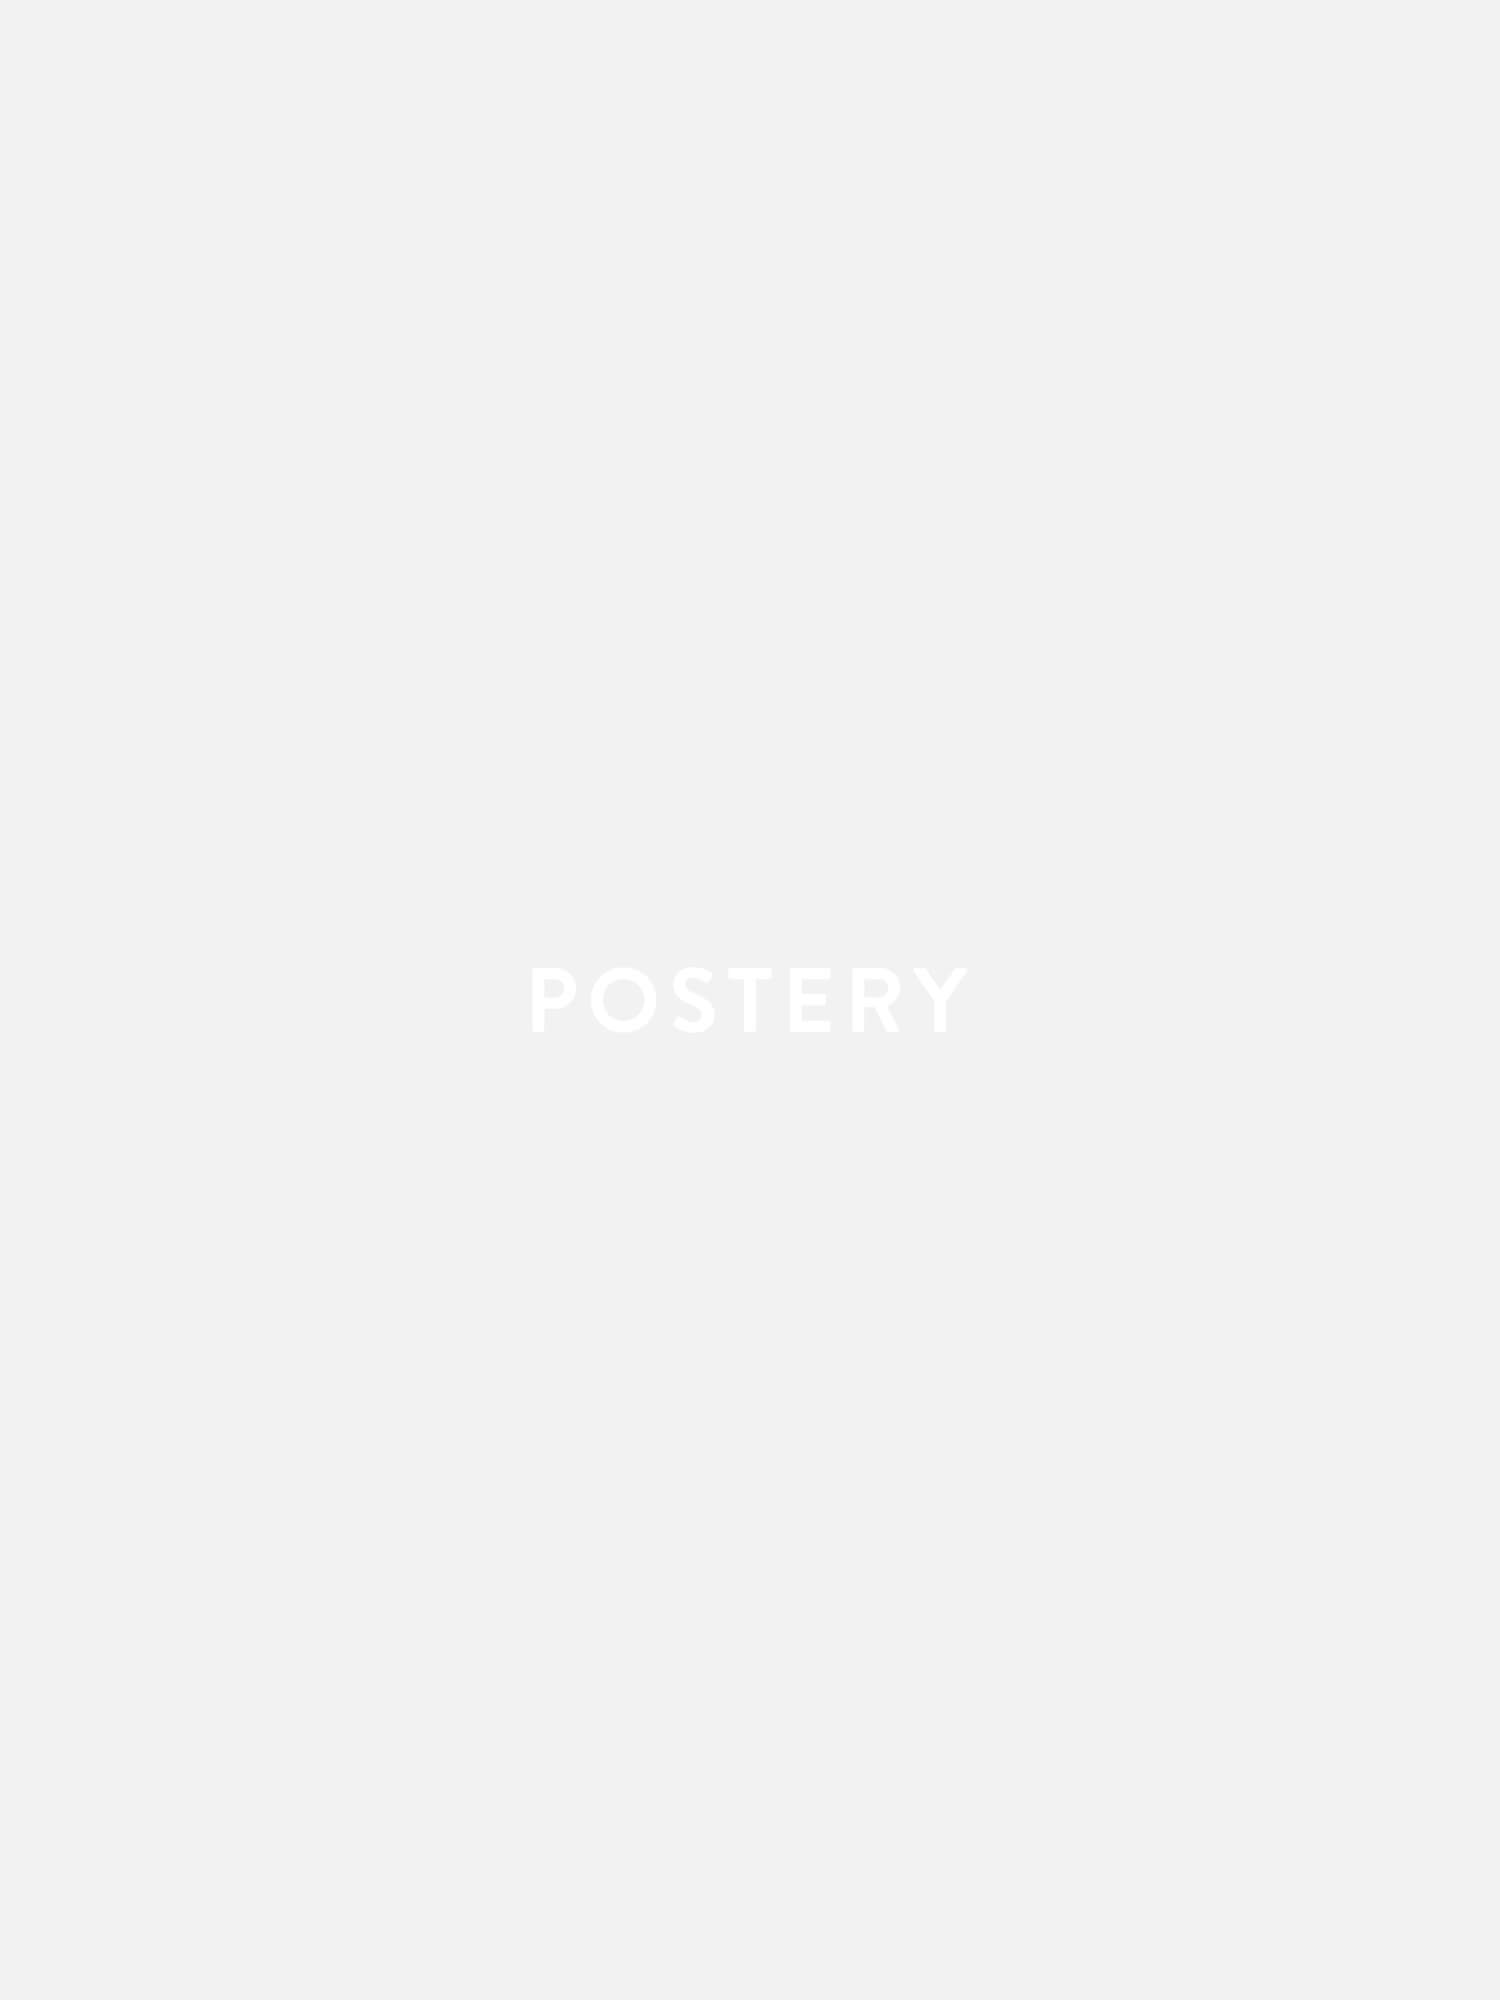 Empire State Building no.2 Poster